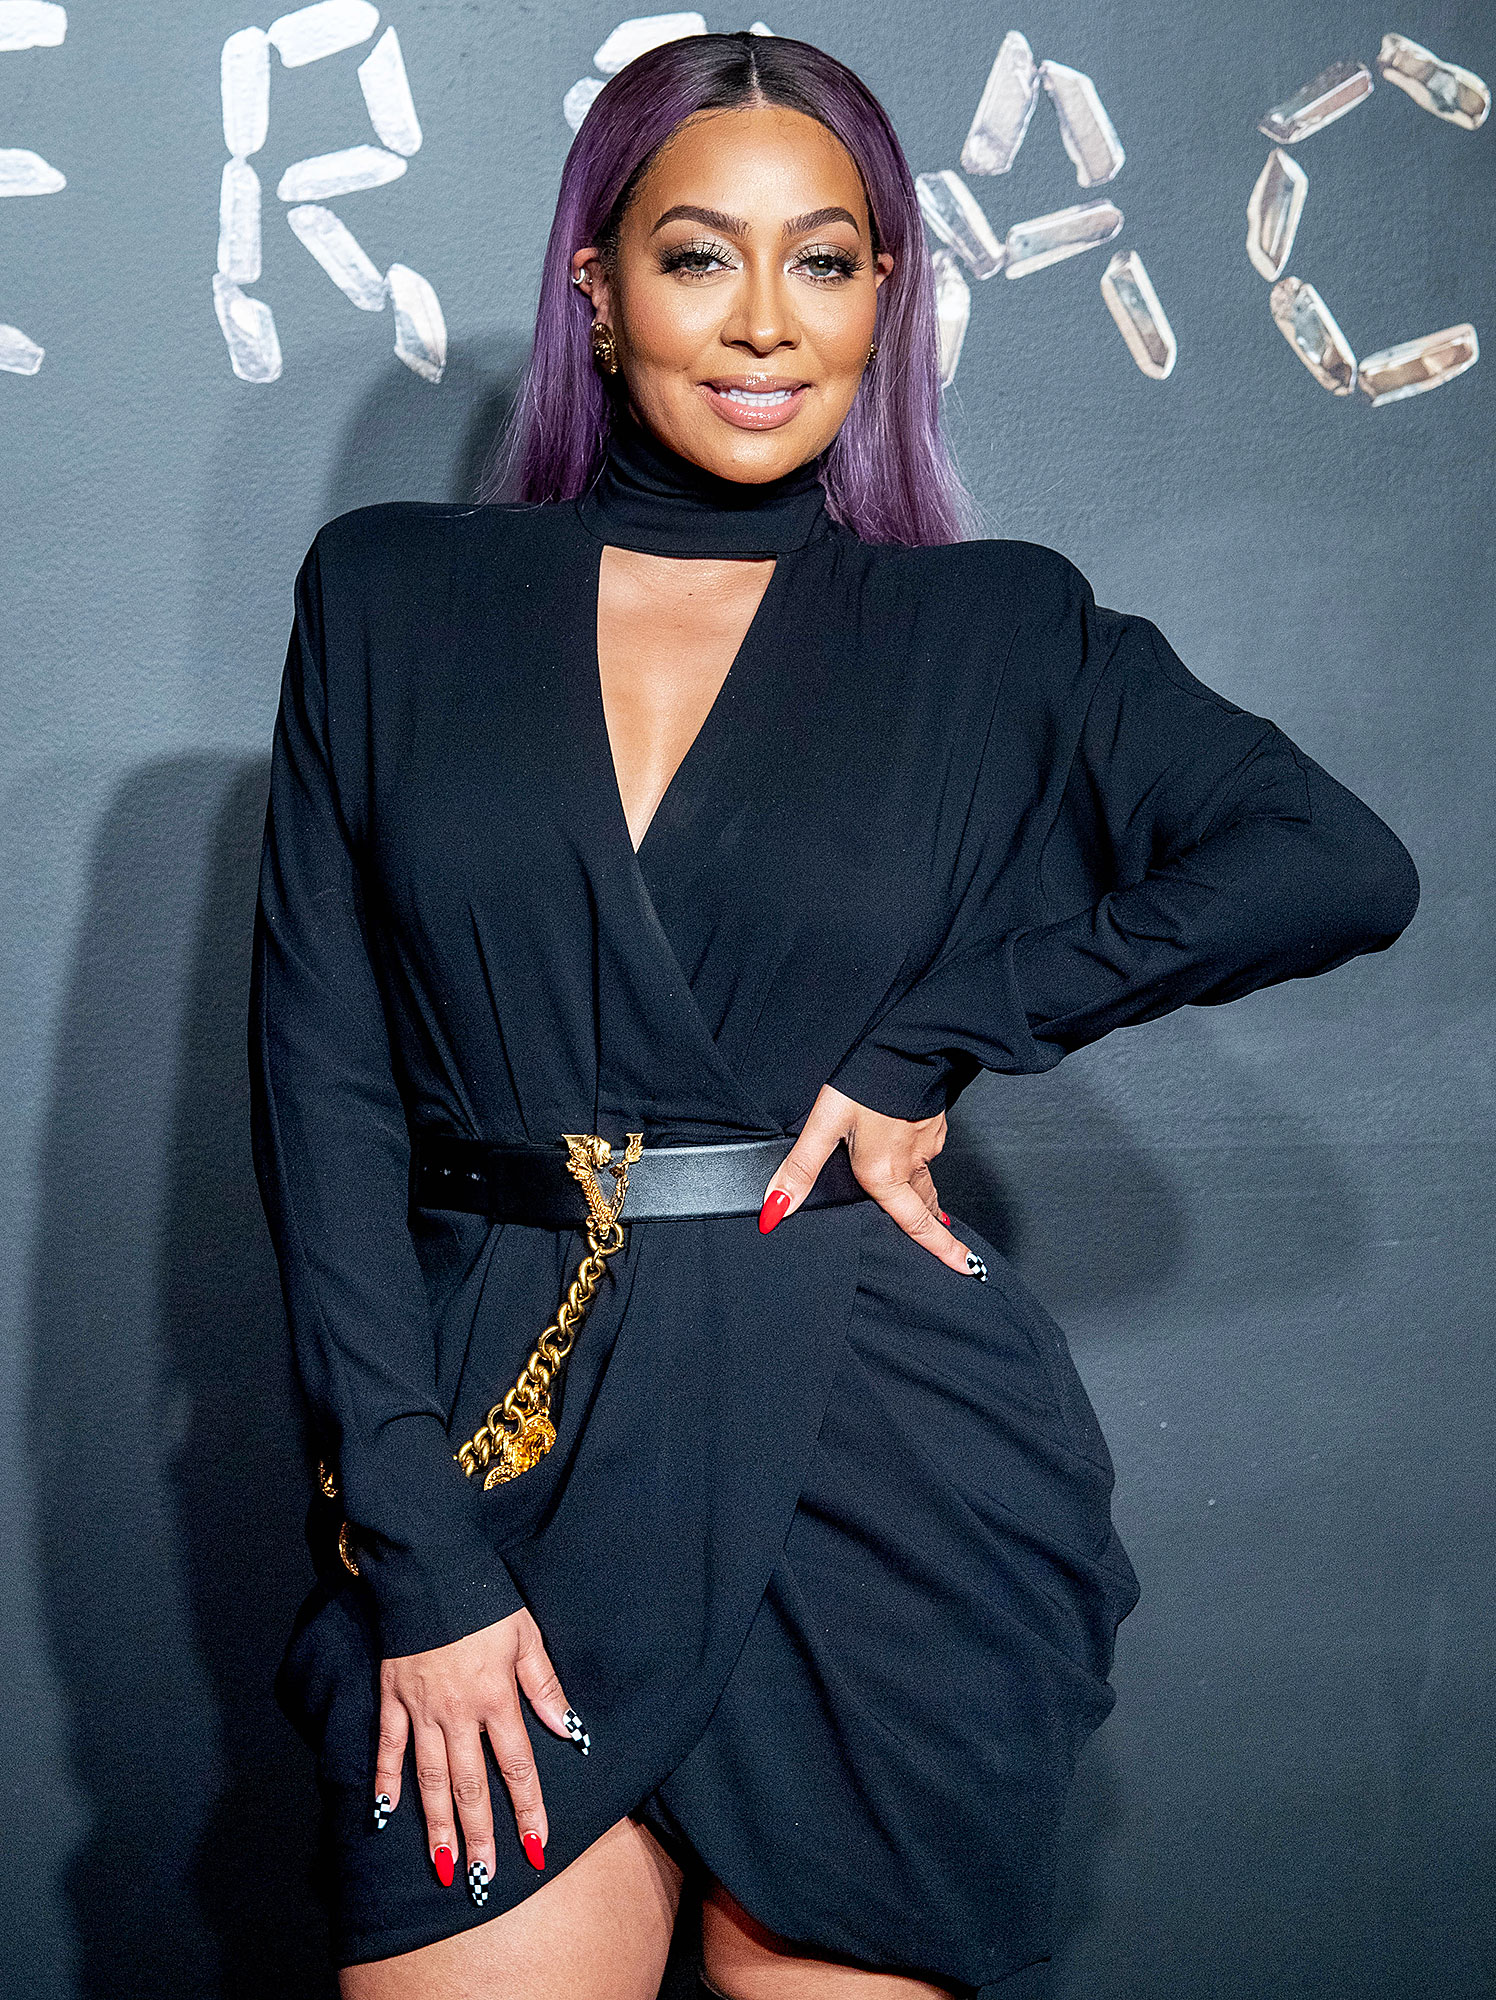 Lala Anthony Beauty Secrets - Lala Anthony attends the the Versace fall 2019 fashion show at the American Stock Exchange Building in lower Manhattan on December 02, 2018.